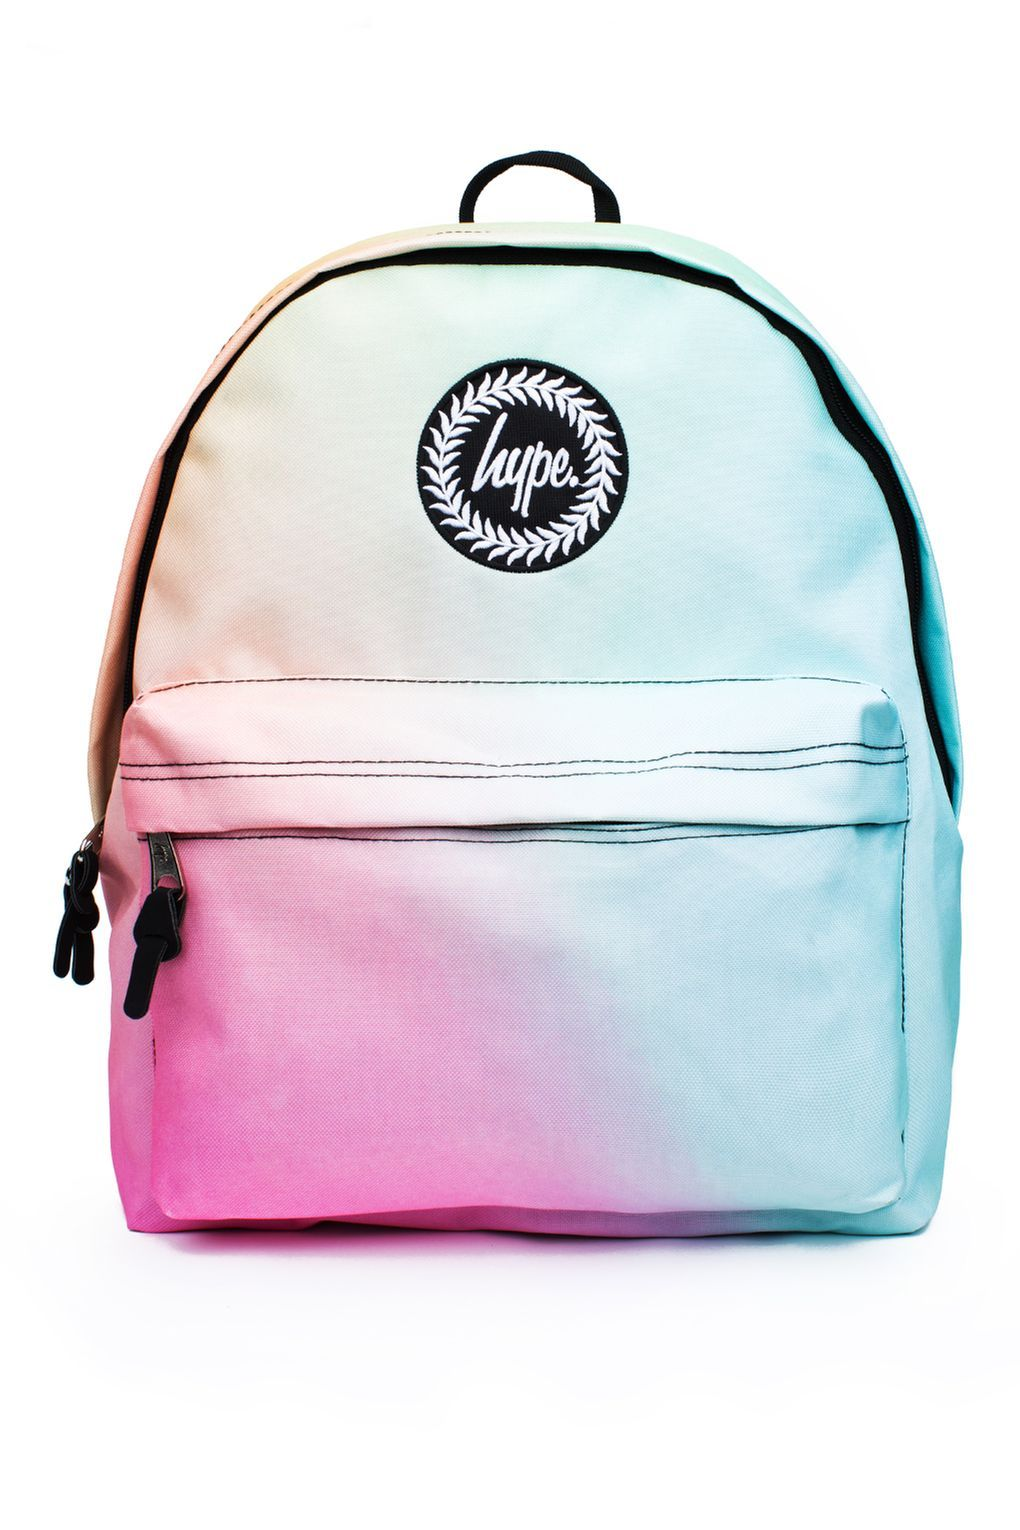 7c95fc9c0 Tropical Fade Backpack by Hype in 2019 | Backpacks | Backpacks, Bags ...